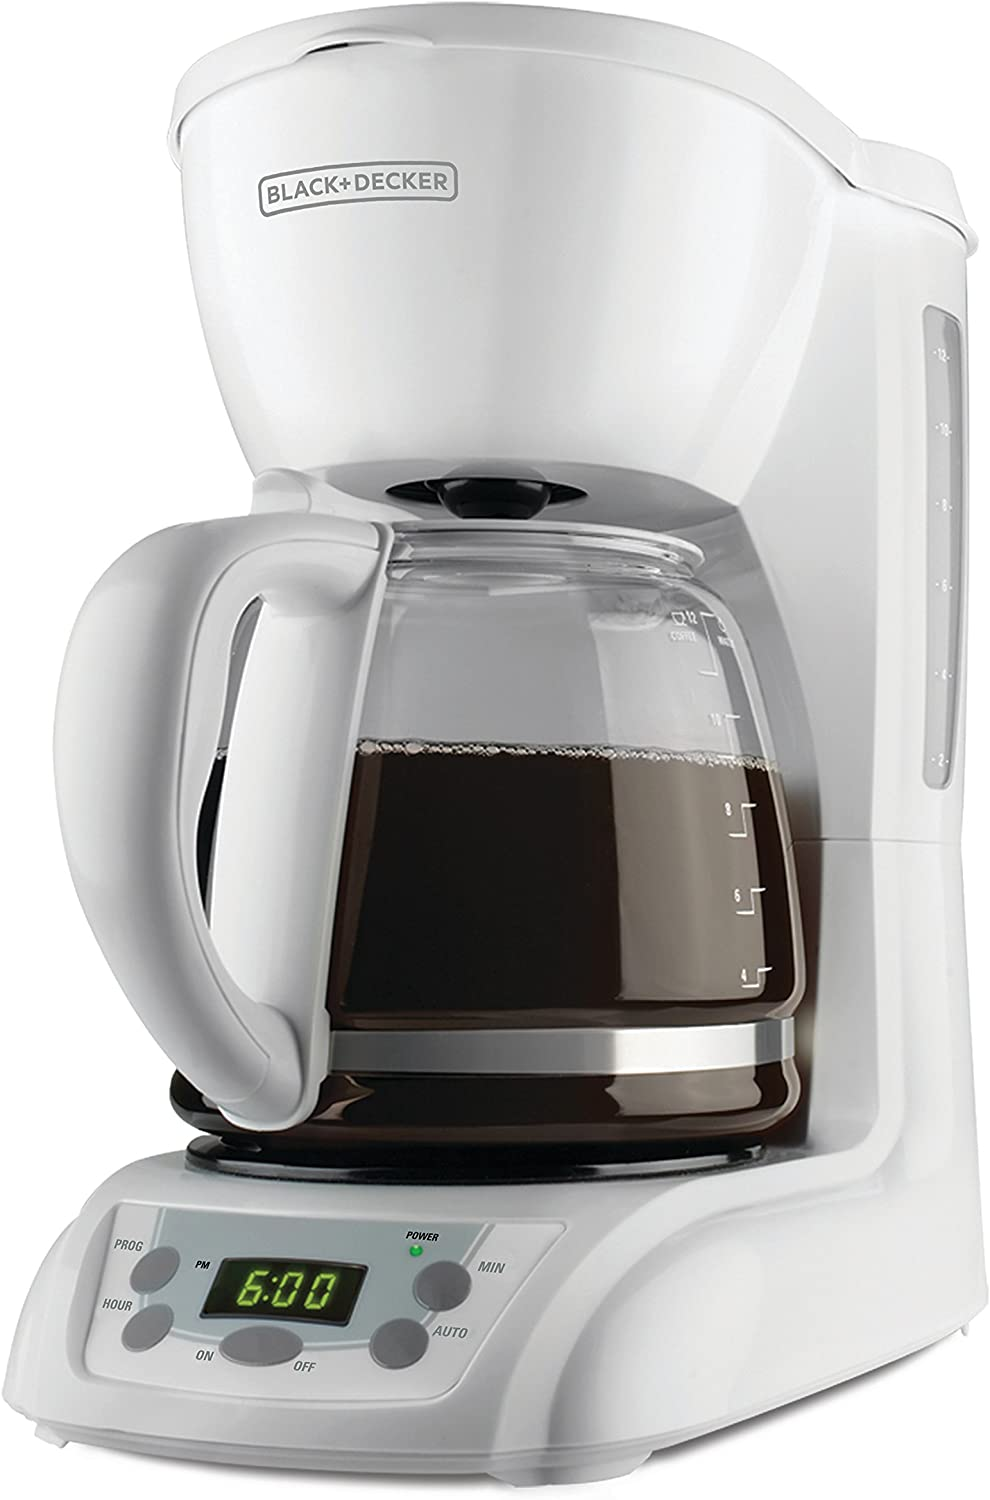 BLACK+DECKER 12-Cup Programmable Coffeemaker with Glass Carafe, White, DLX1050W